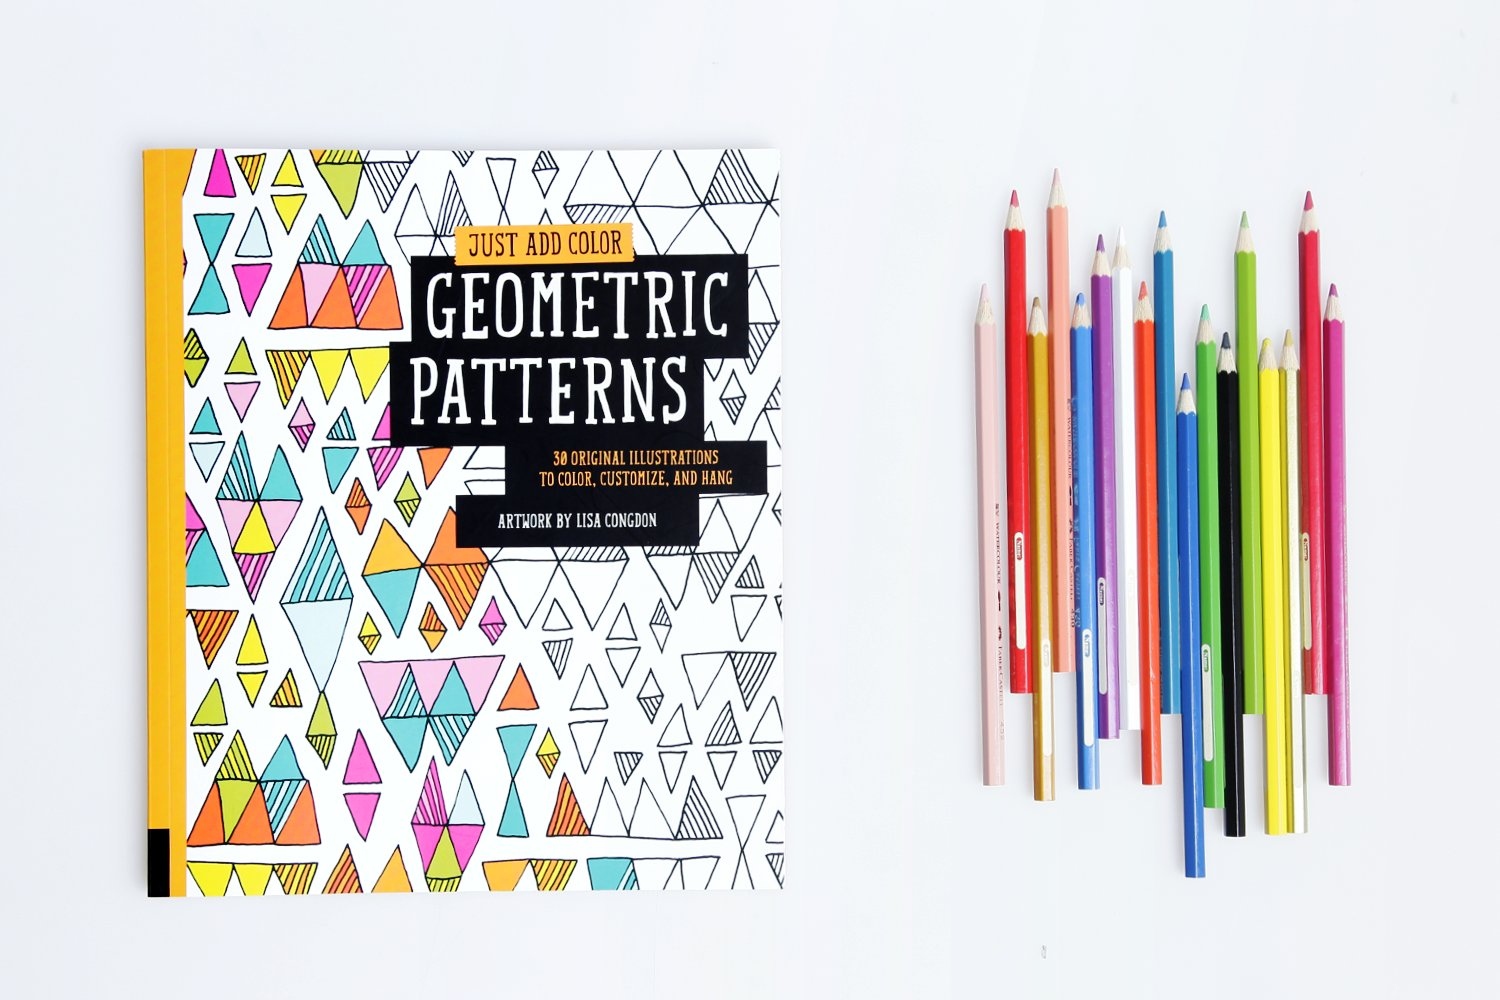 Geometric Patterns by Lisa Congdon